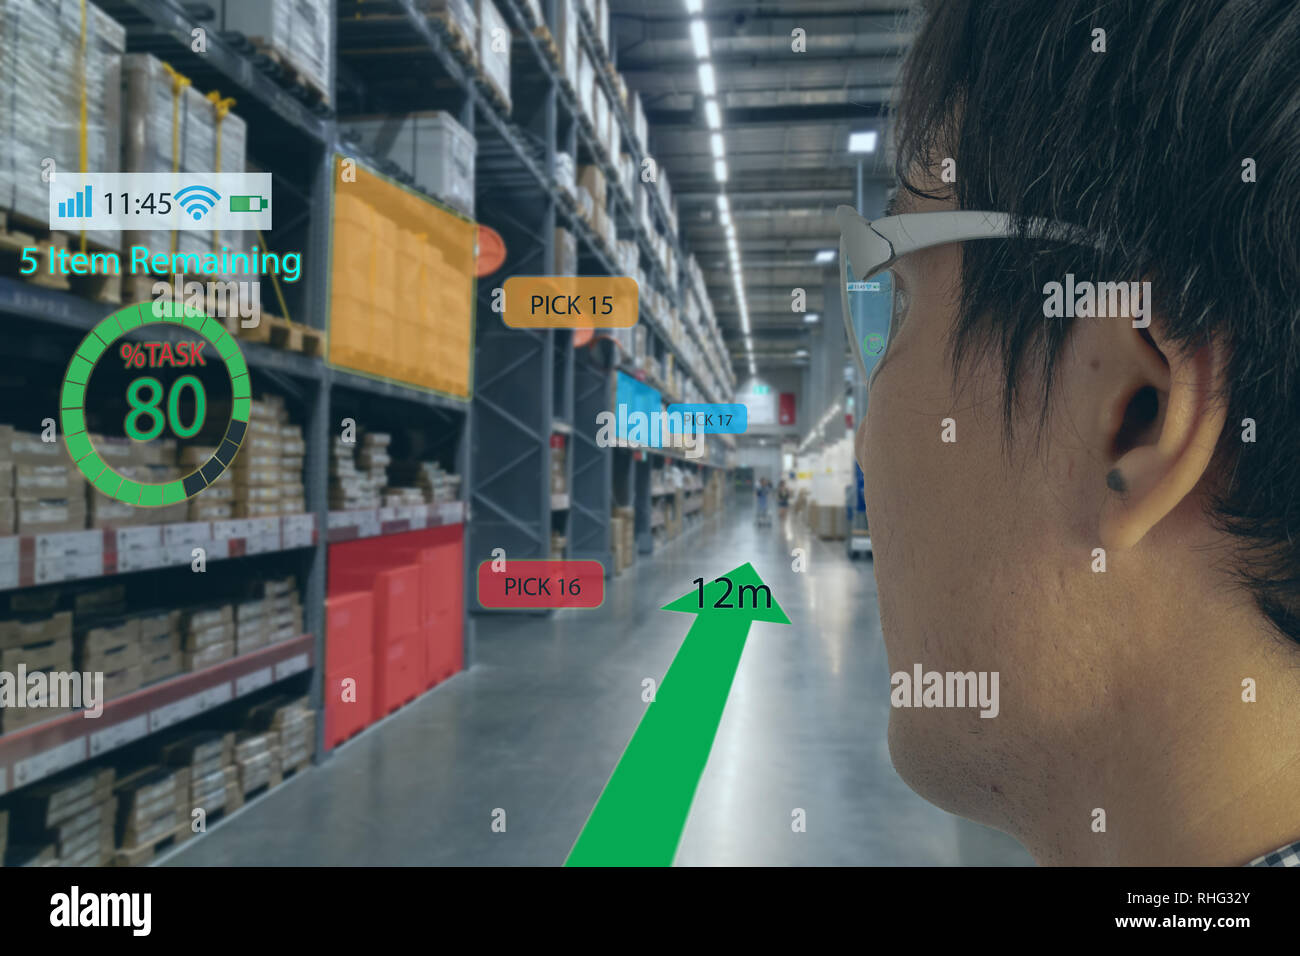 Intellige Stock Photos & Intellige Stock Images - Alamy